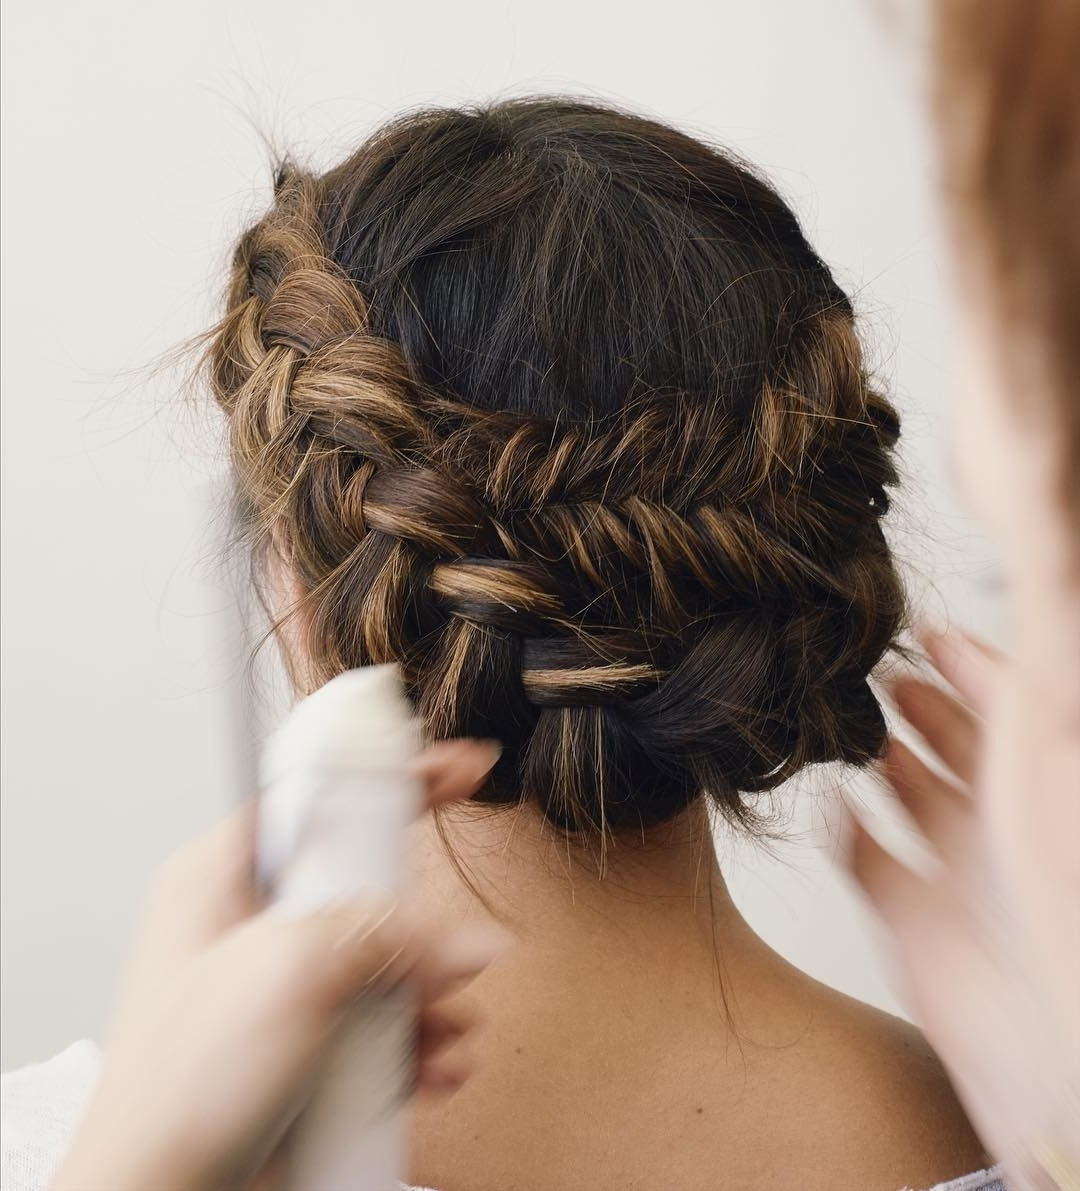 Brides Regarding Most Recent Braid And Bun Ponytail Hairstyles (View 3 of 20)